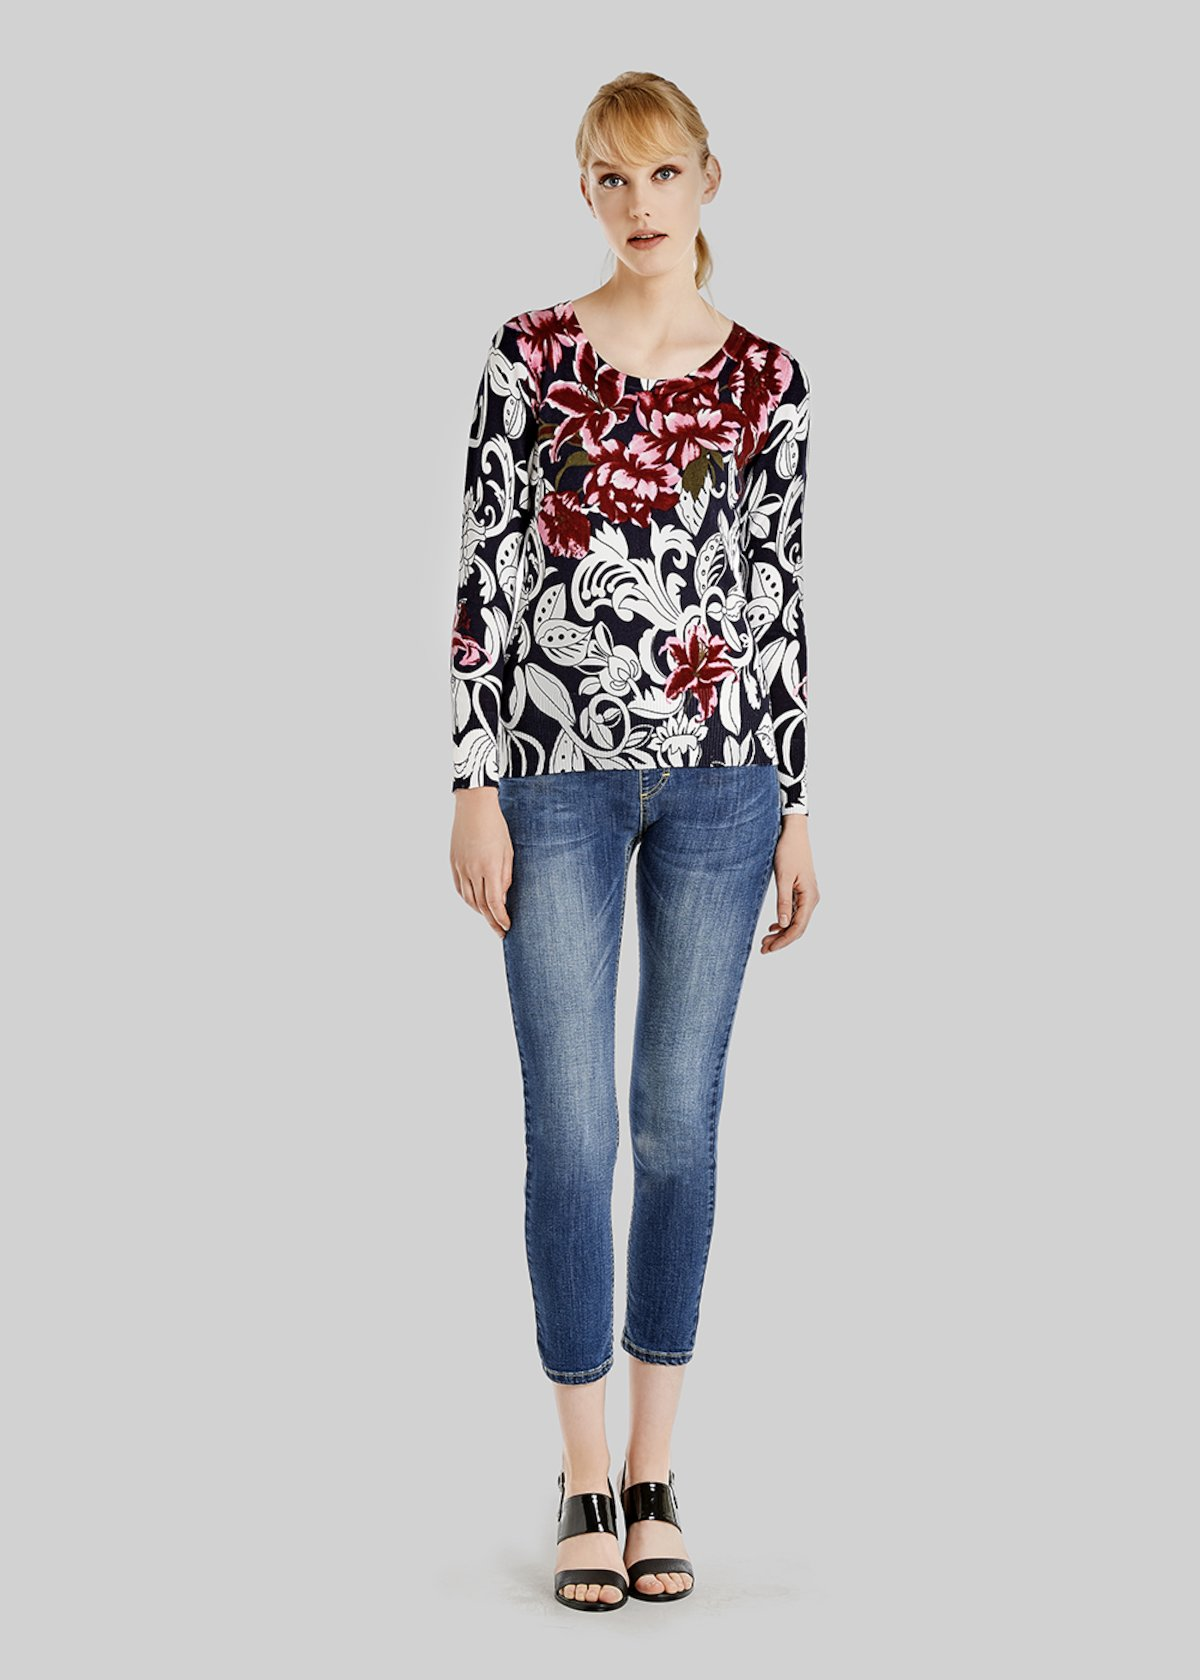 Maike sweater with floral print with ribs - Medium Blue\ White\ Fantasia - Woman - Category image